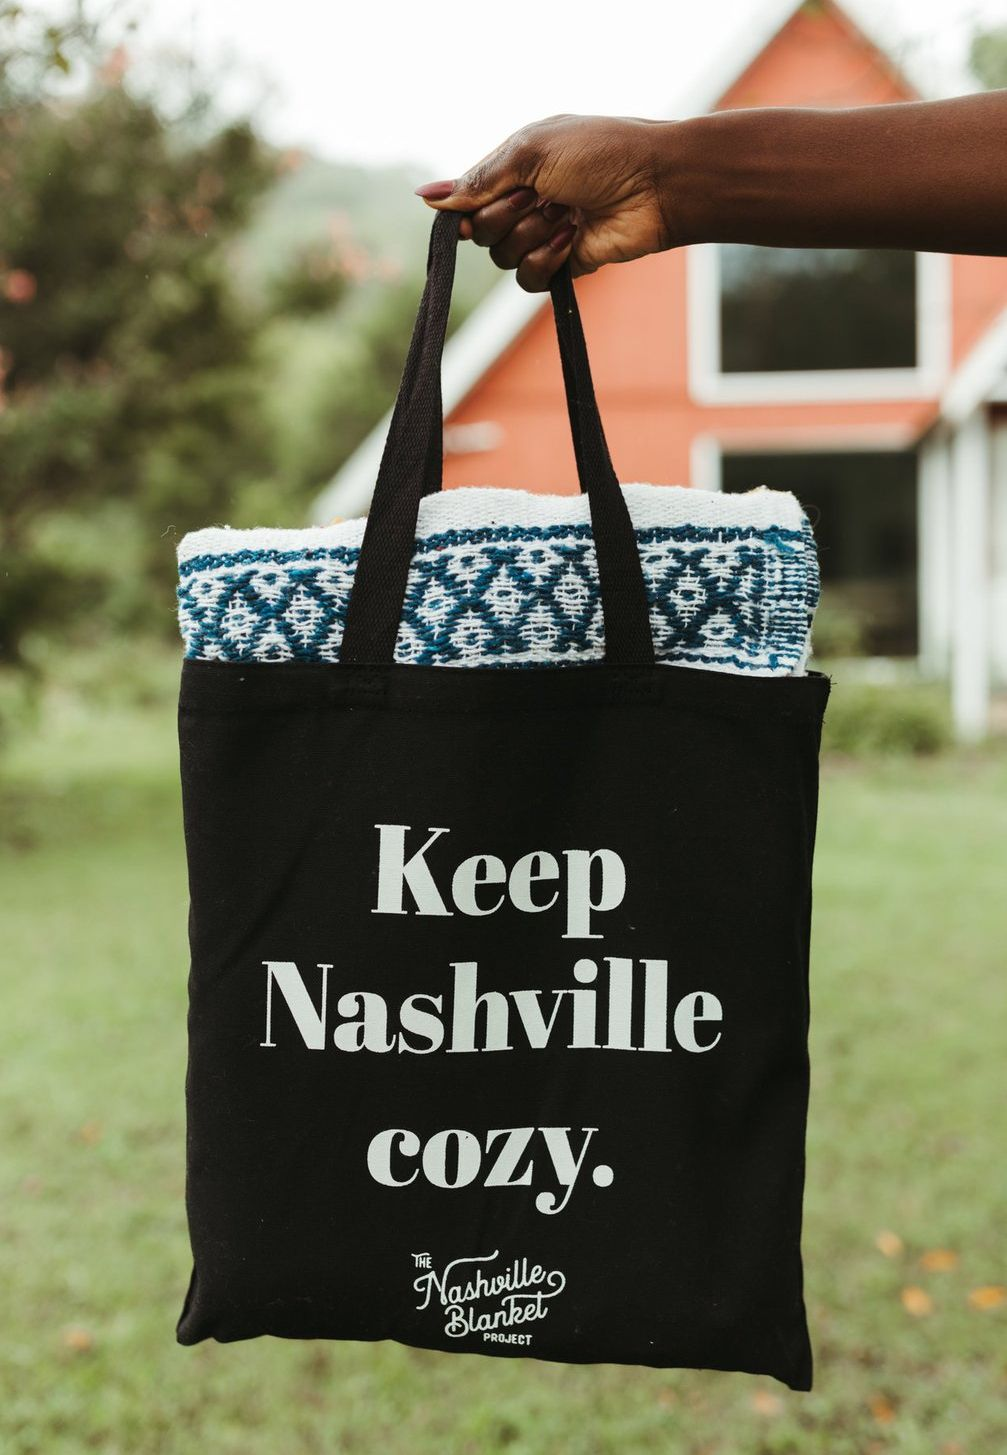 Nashville Blanket Project